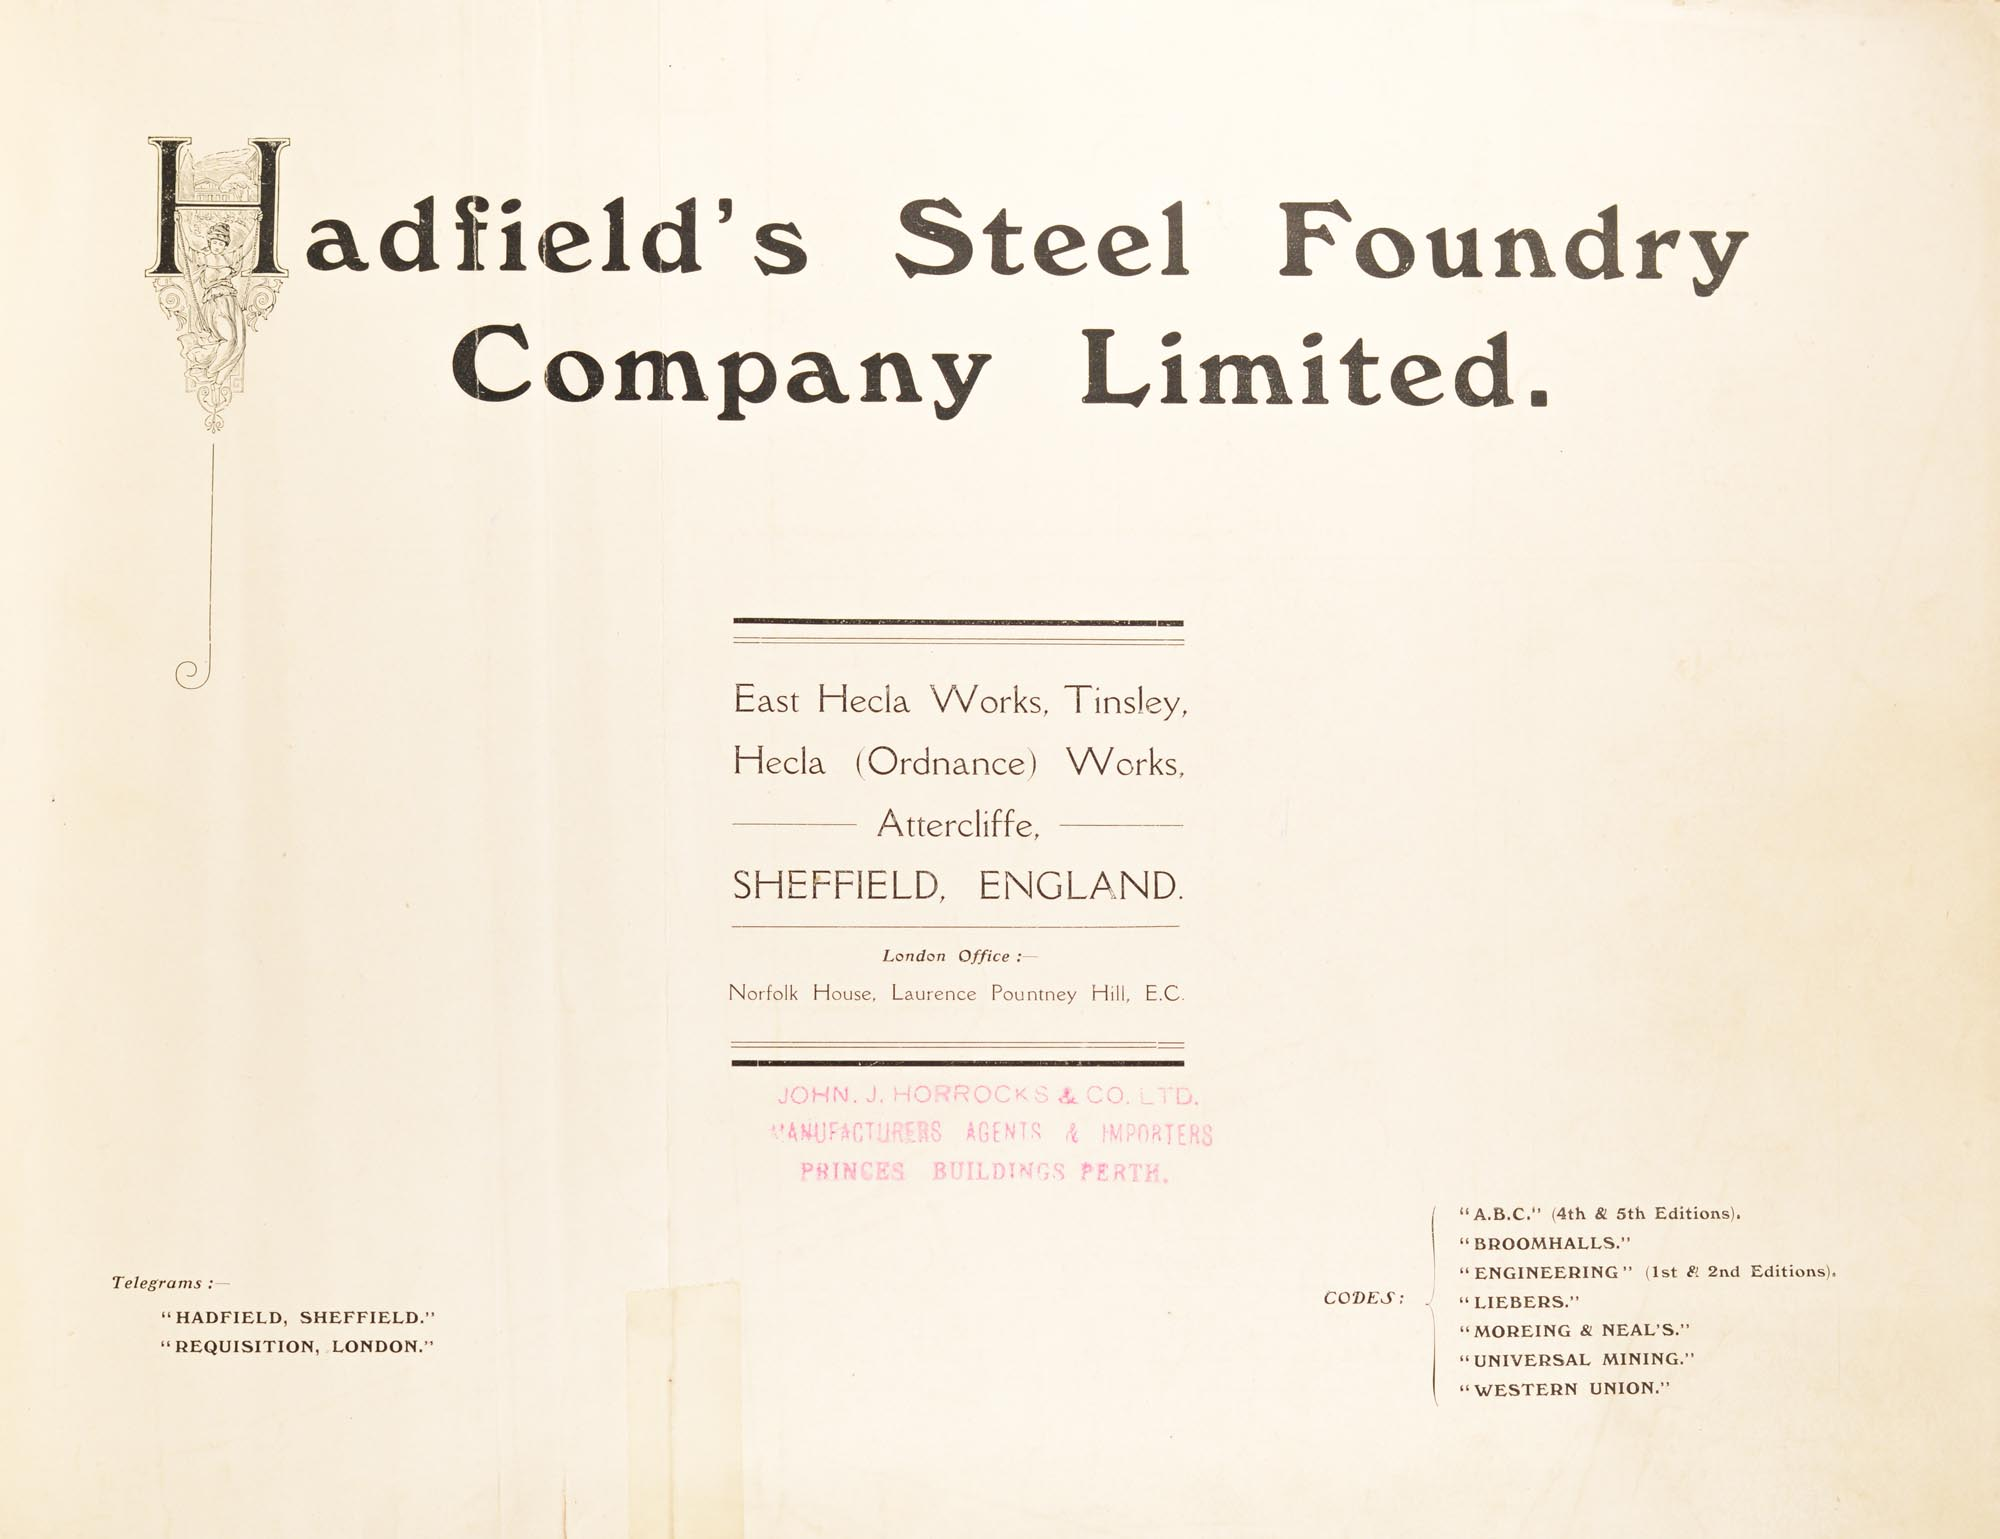 Hadfield's Steel Foundry Company Limited  East Hecla Works, Tinsley, Hecla  Ordnance Works, Attercliffe, Sheffield, England by Trade Catalogue on